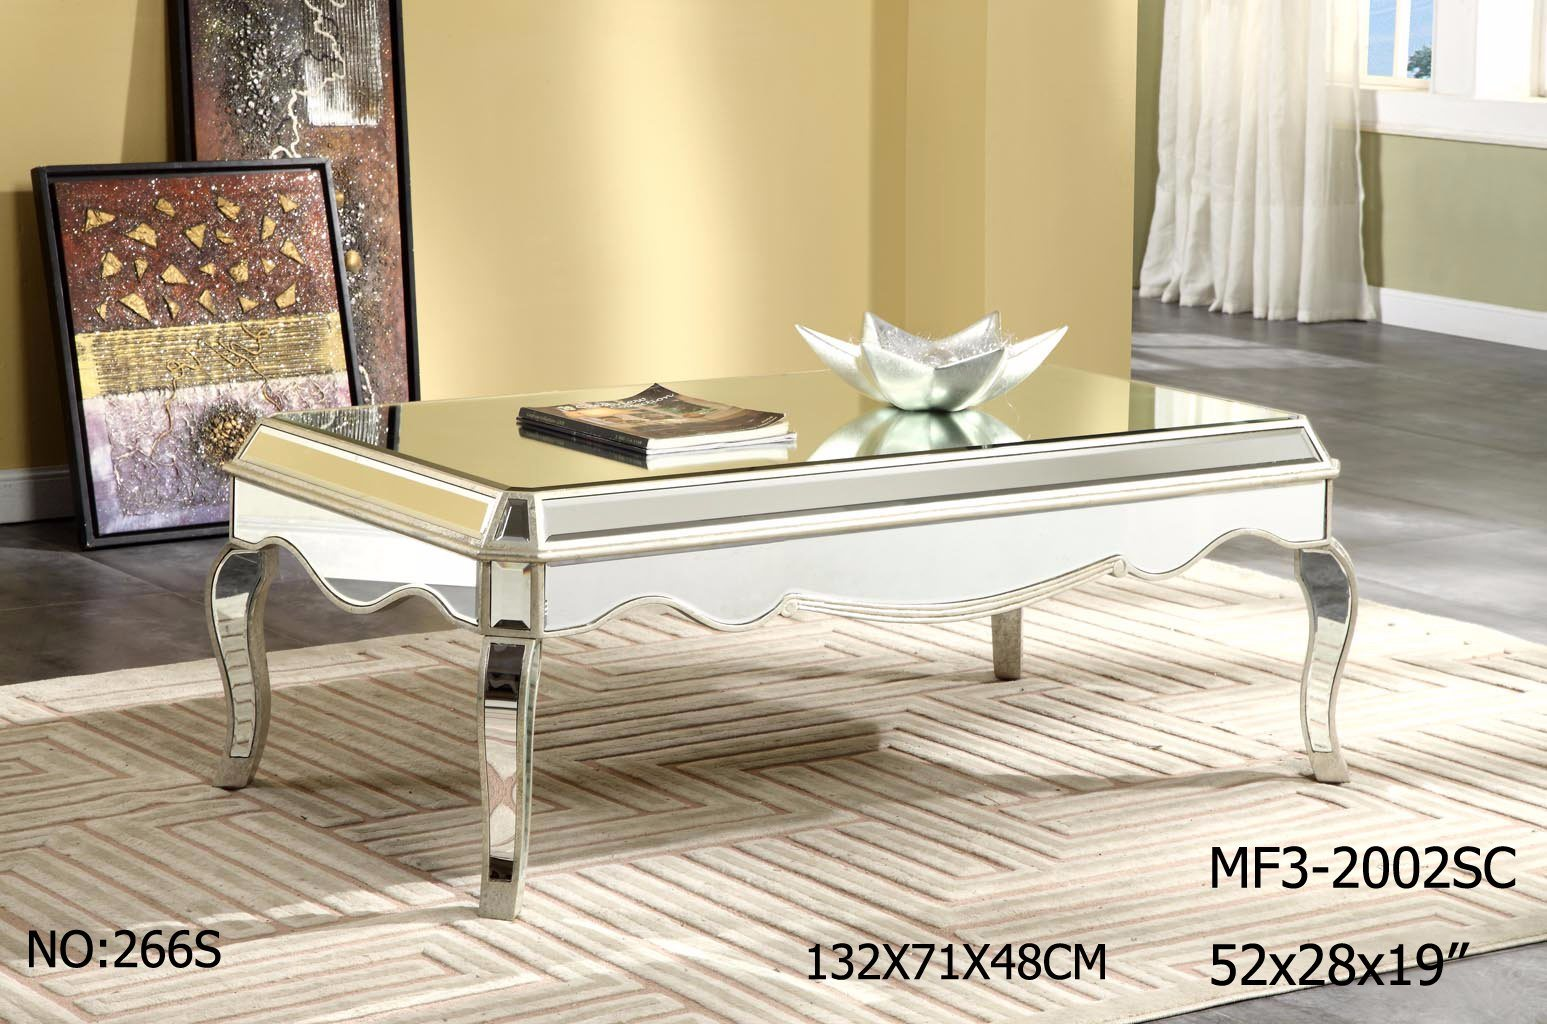 New Customized Mirrored Coffee Table for Hotel